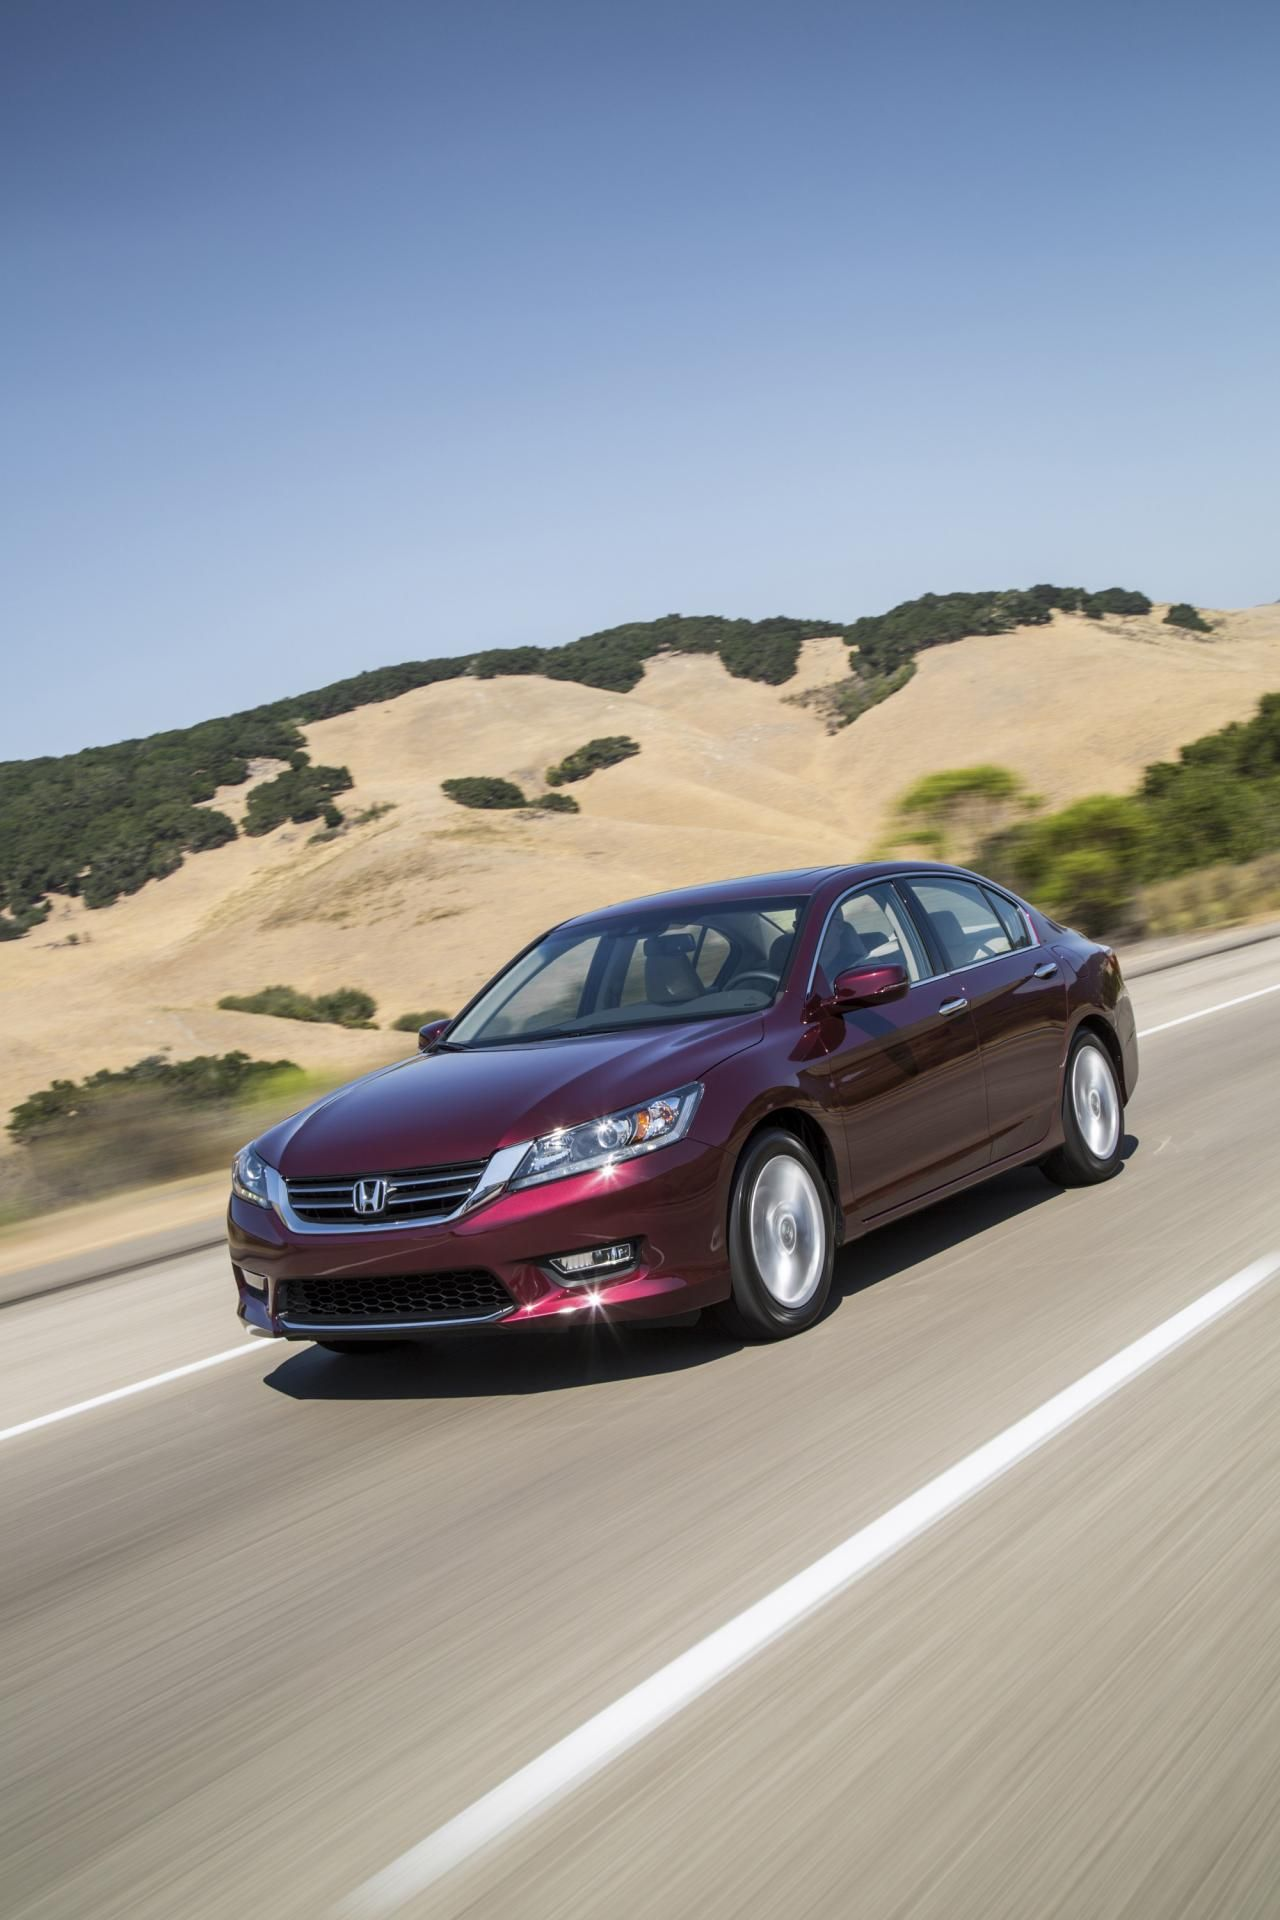 a52f8b01f51749e480705dd519014a2d Interesting Info About 2013 Honda Accord Exl with Terrific Pictures Cars Review